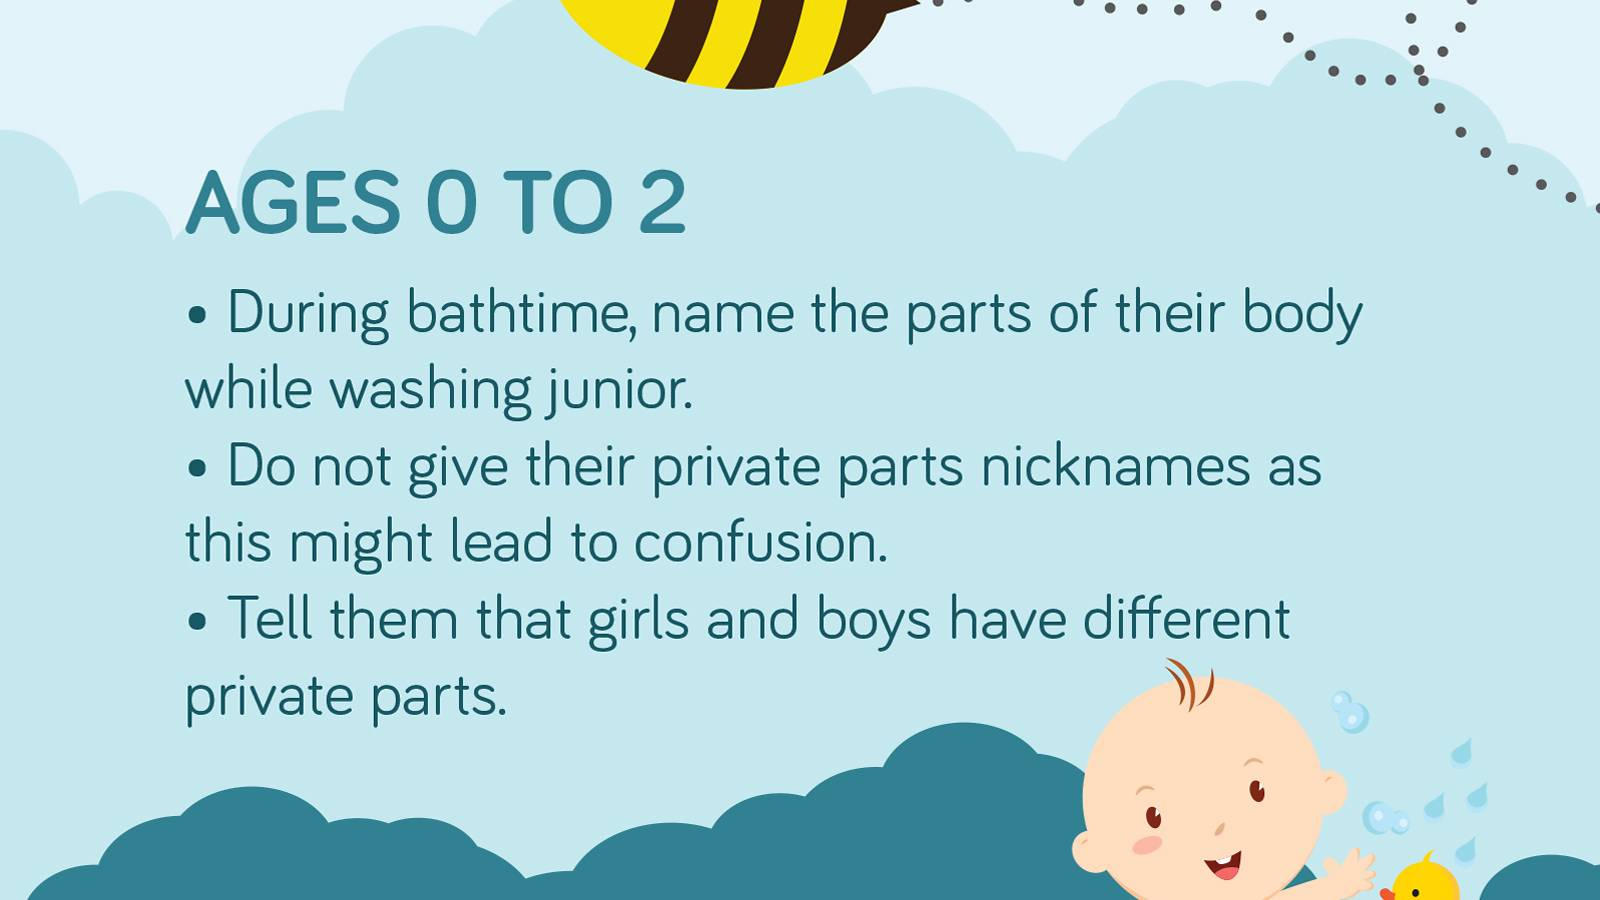 Kids-Age-appropriate-facts-about-sex-to-share-with-your-kids-[Infographic]-02